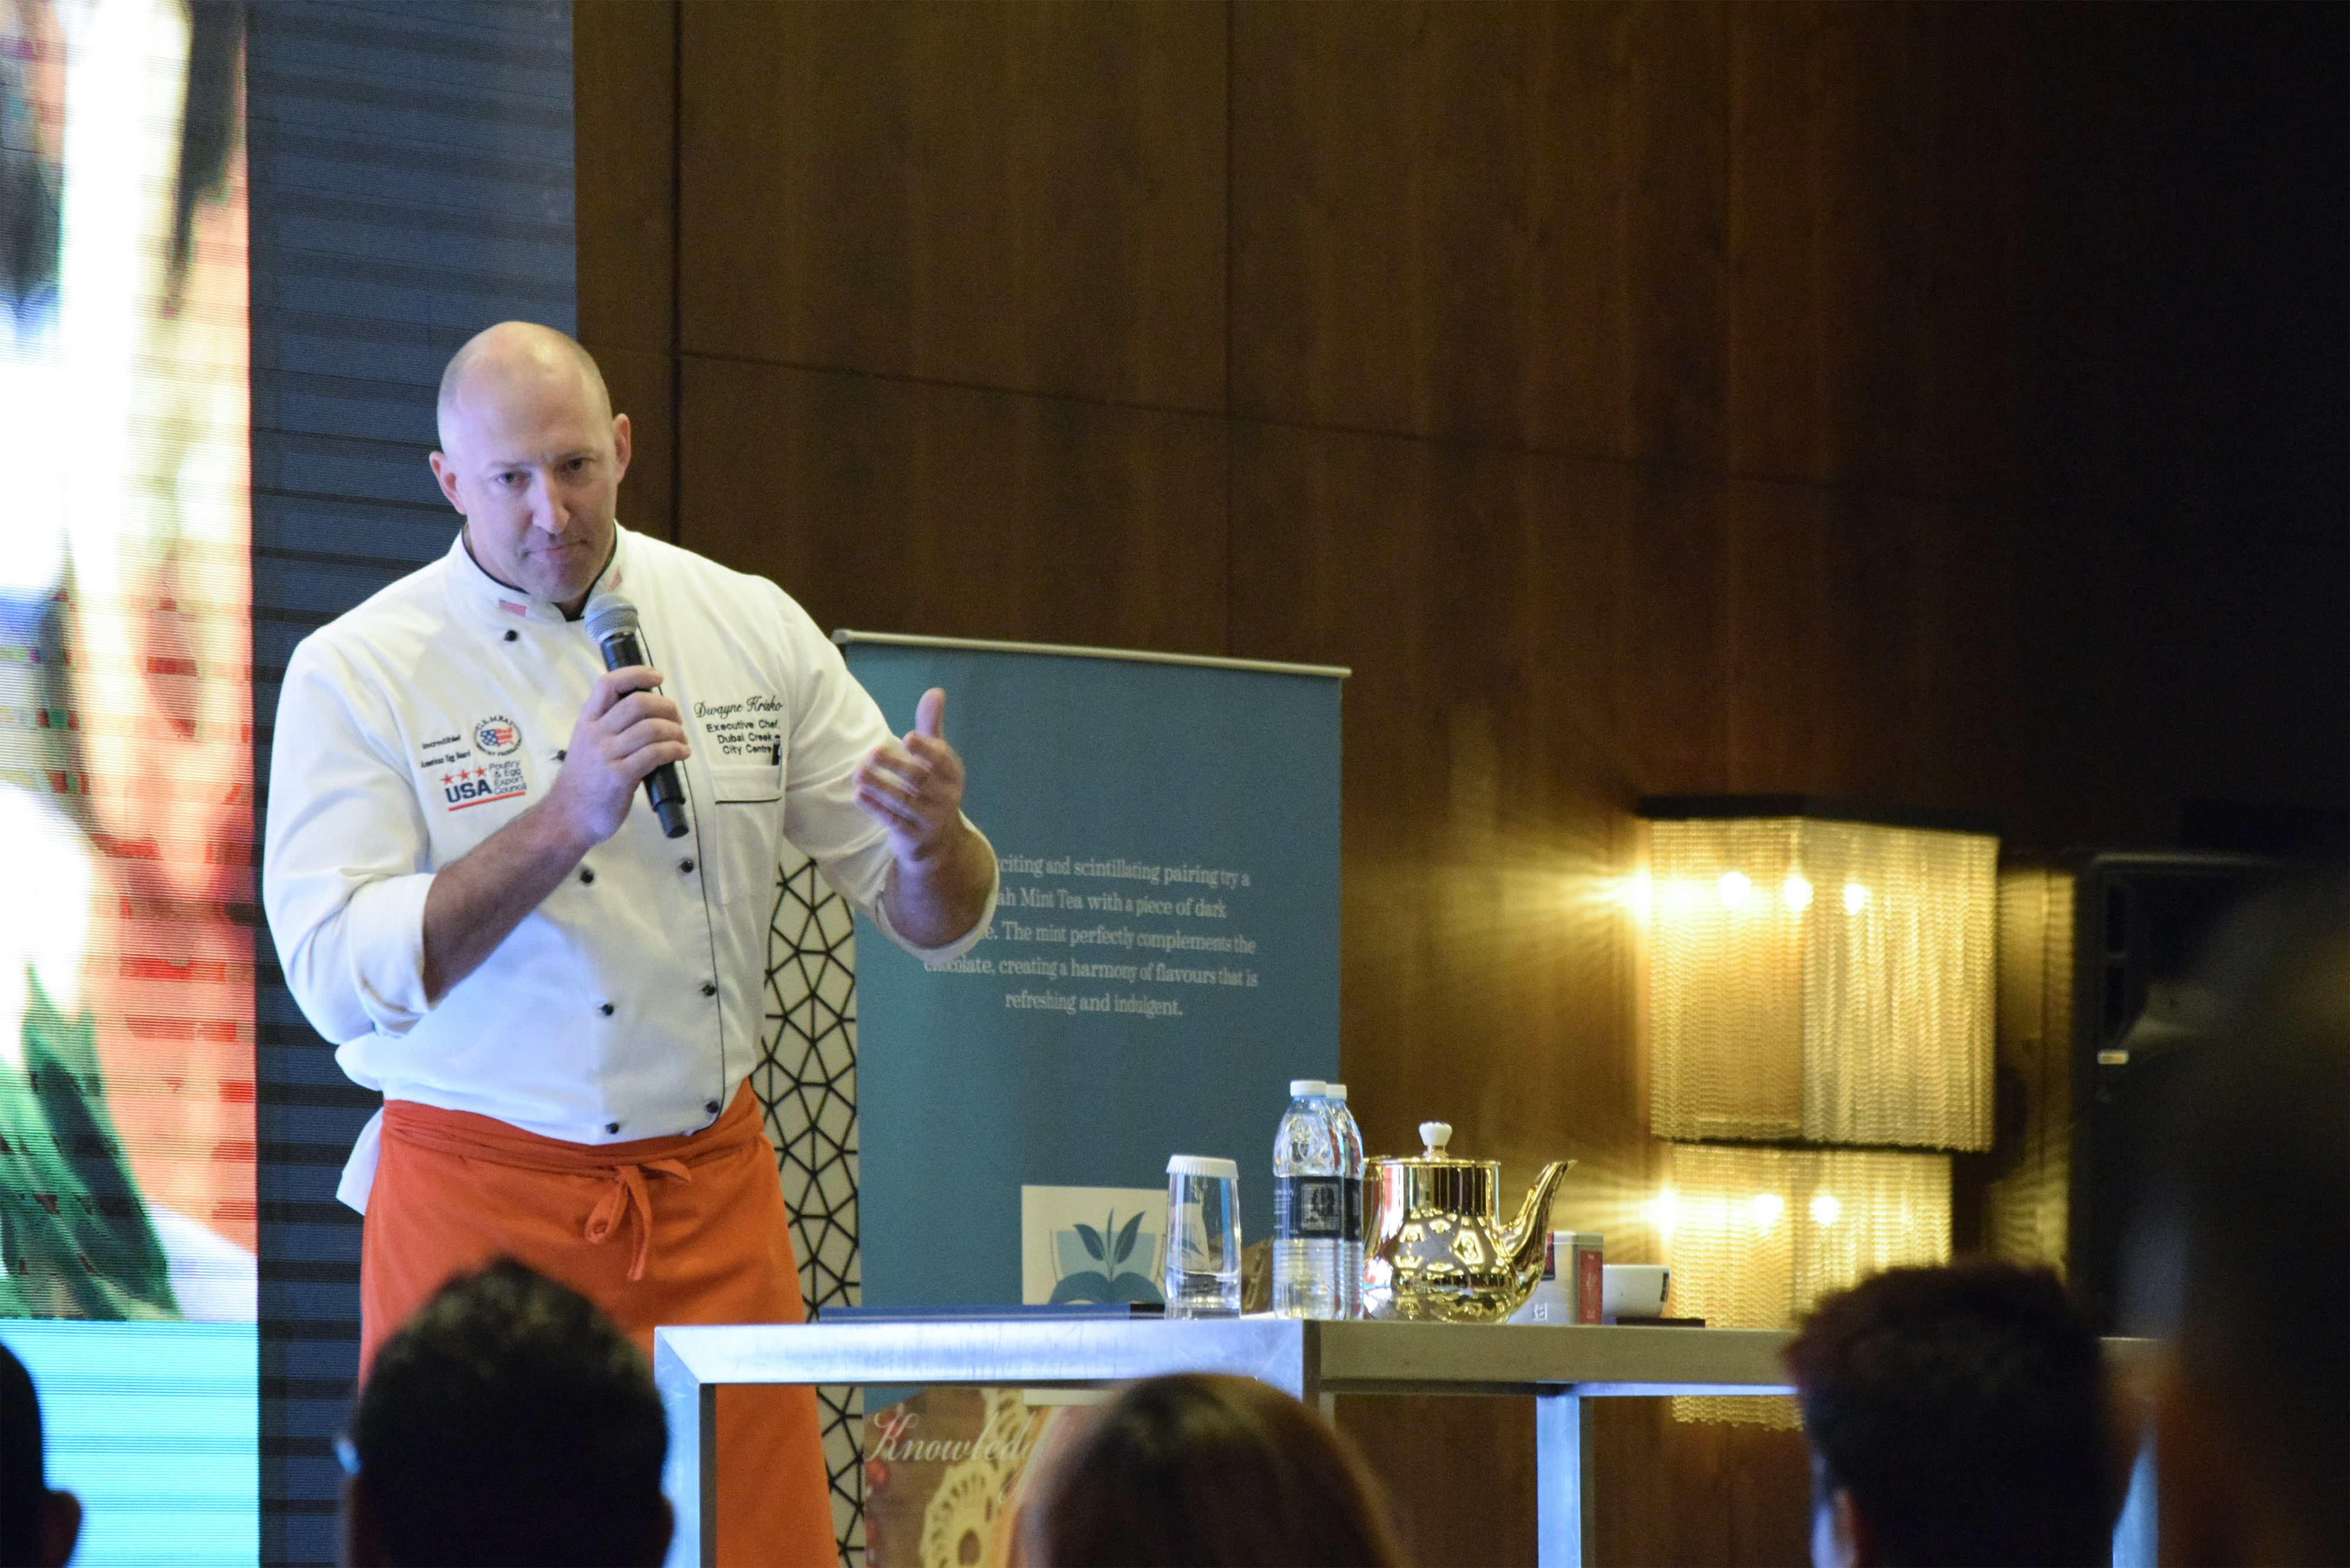 Chef Dwayne – Ex. Chef of Pullman Hotel Dubai sharing his tea experience